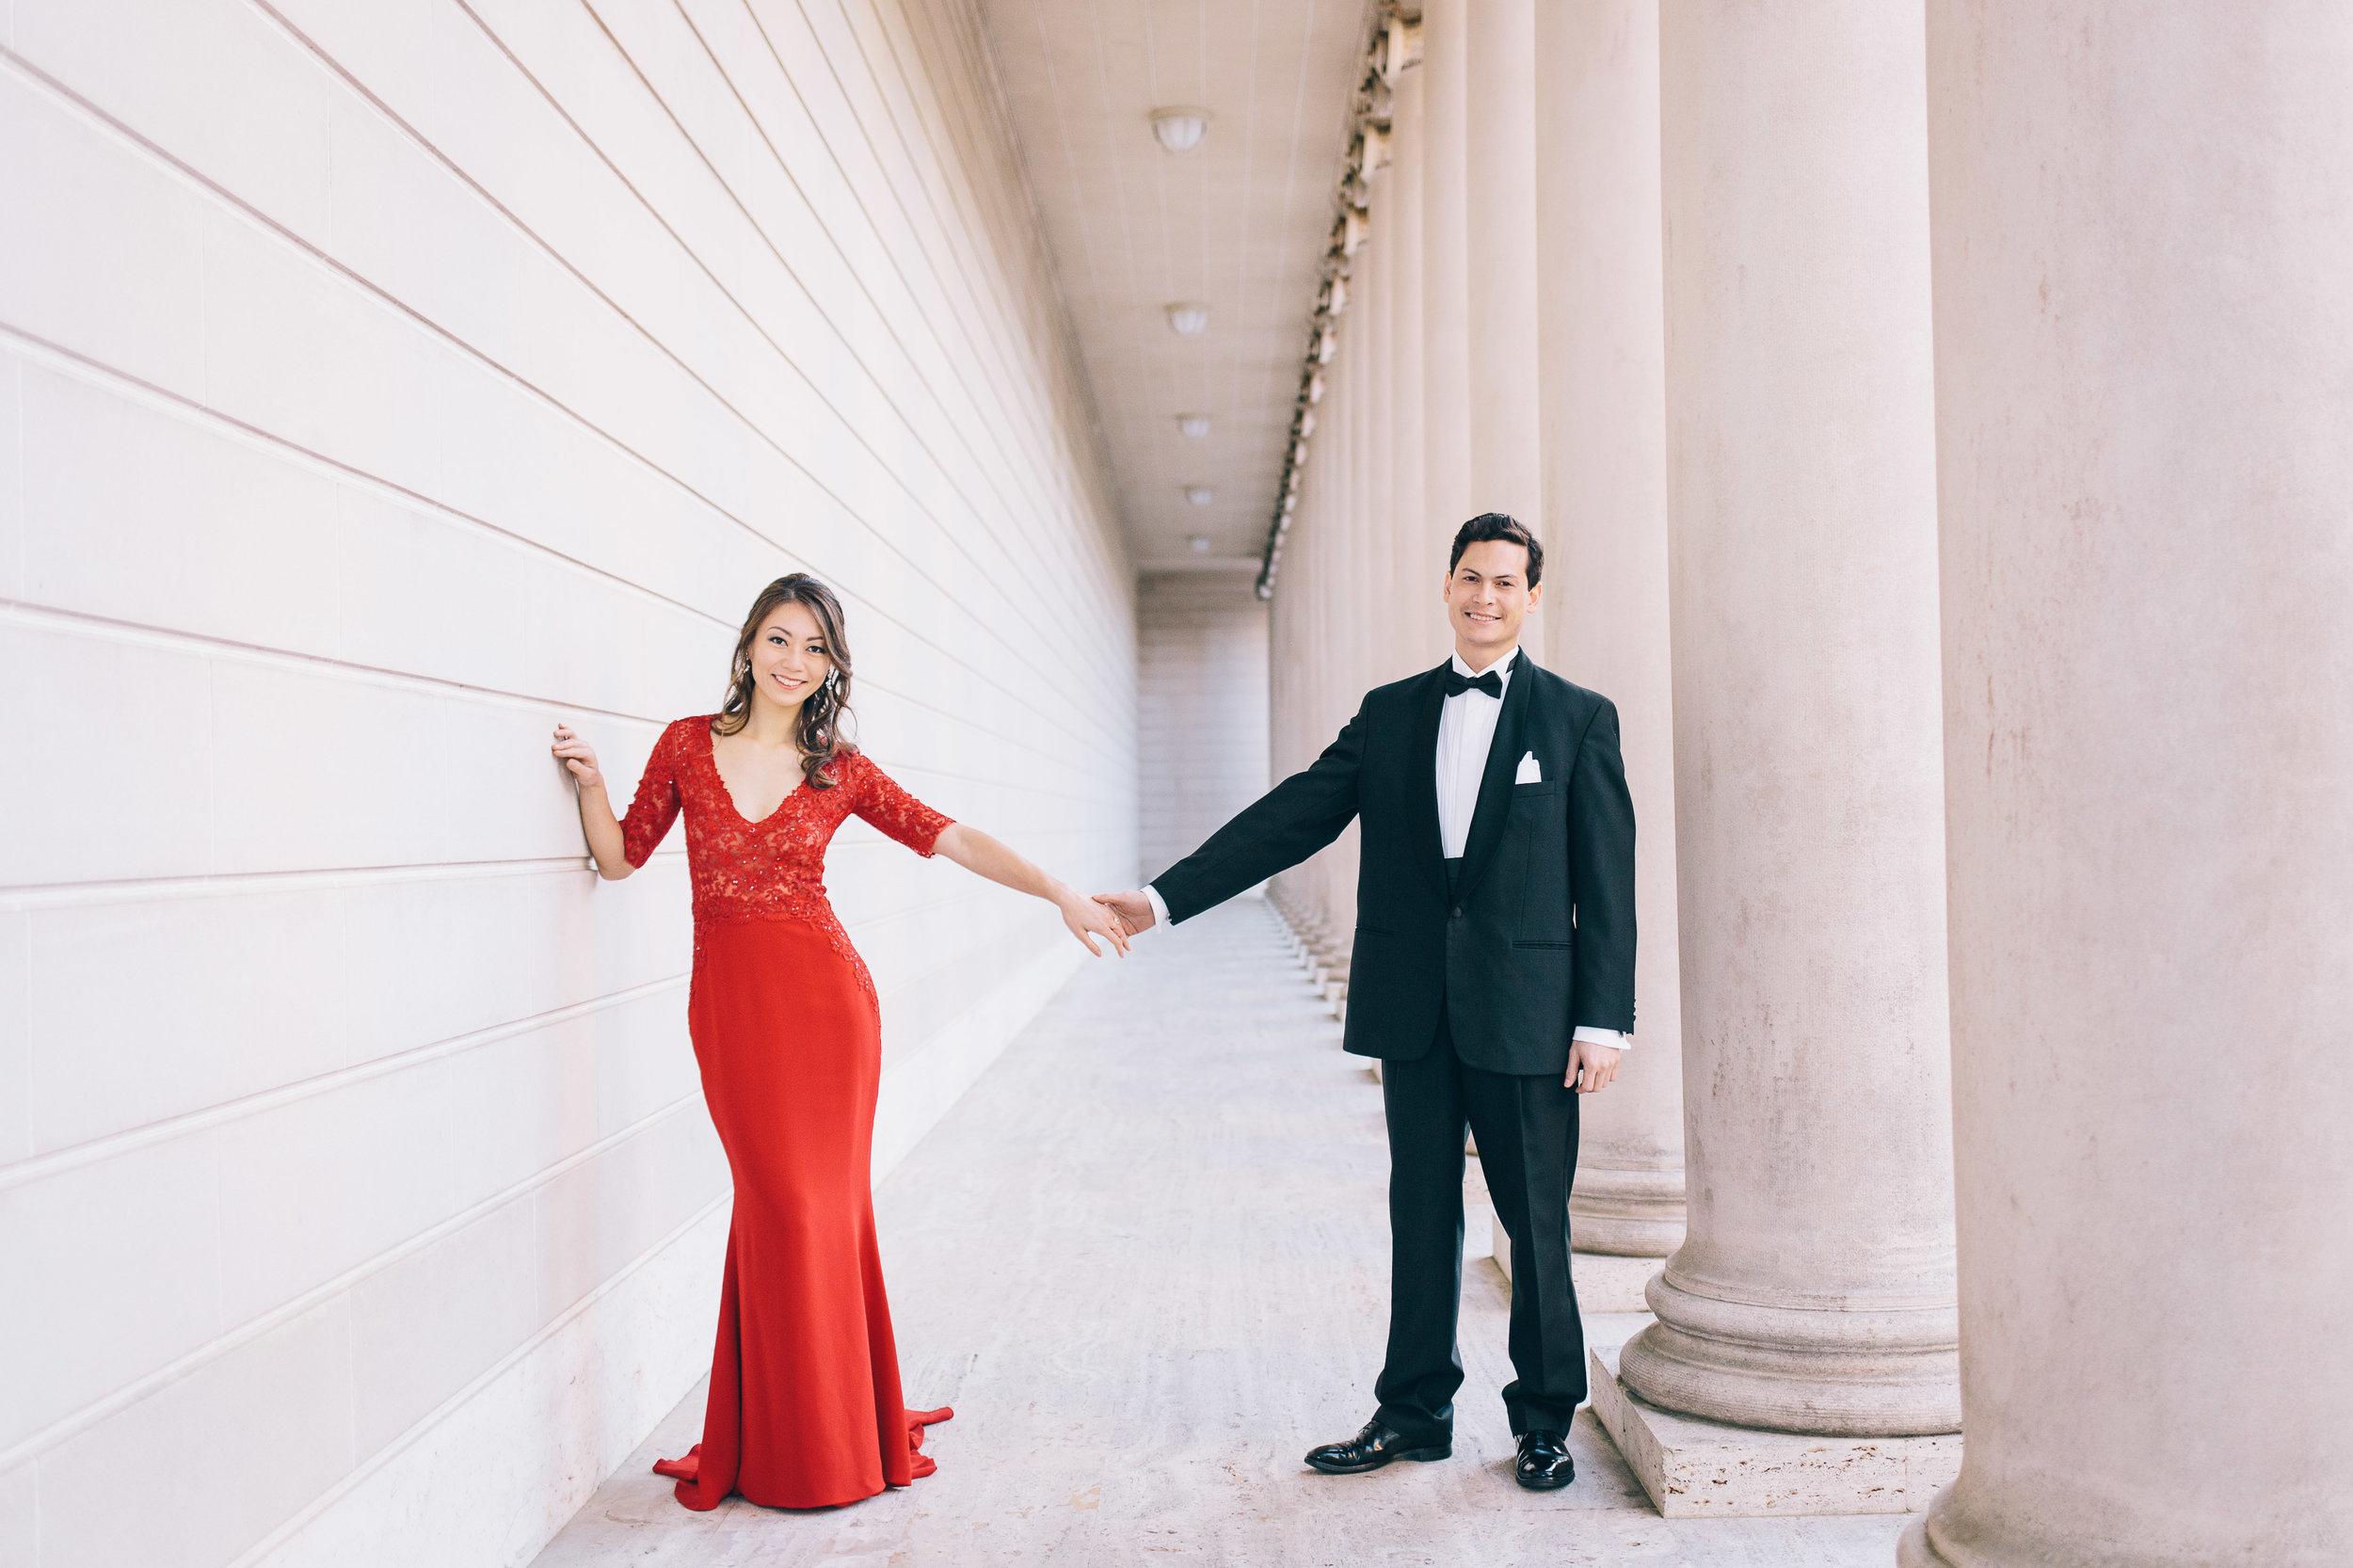 Legion of Honor Engagement Photos by JBJ Pictures - Best Locations for Engagement Photos in SF (4).jpg